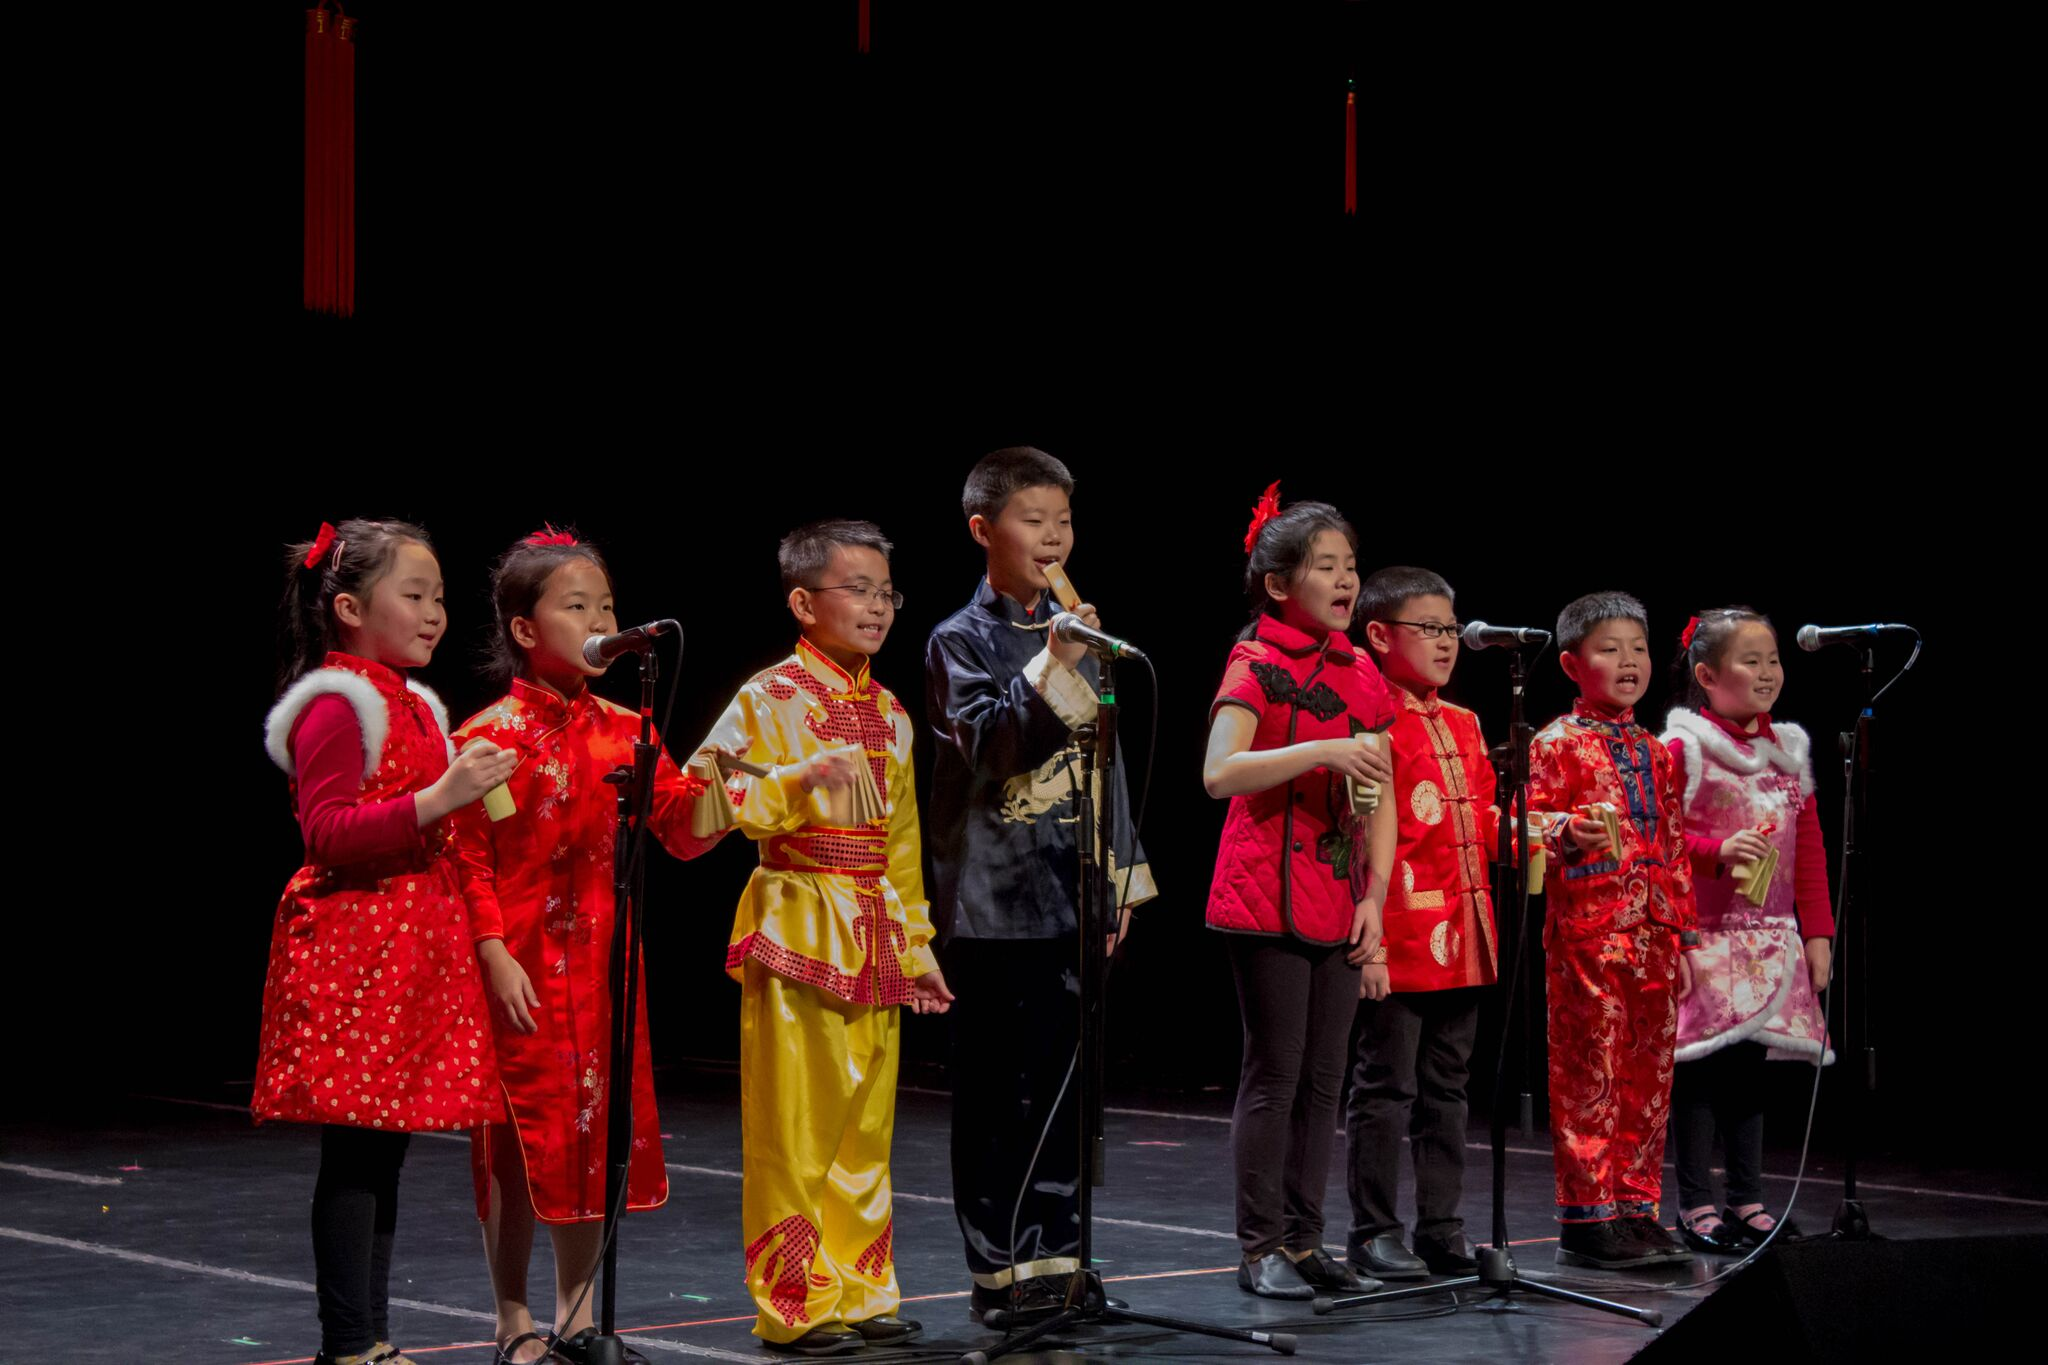 The Stony Brook Youth Group performed a traditional folk dance known as the Shu lai bao. The performance is a short, fast-rhyming talk show accompanied by bamboo clappers. MANJU SHIVACHARAN/THE STATESMAN